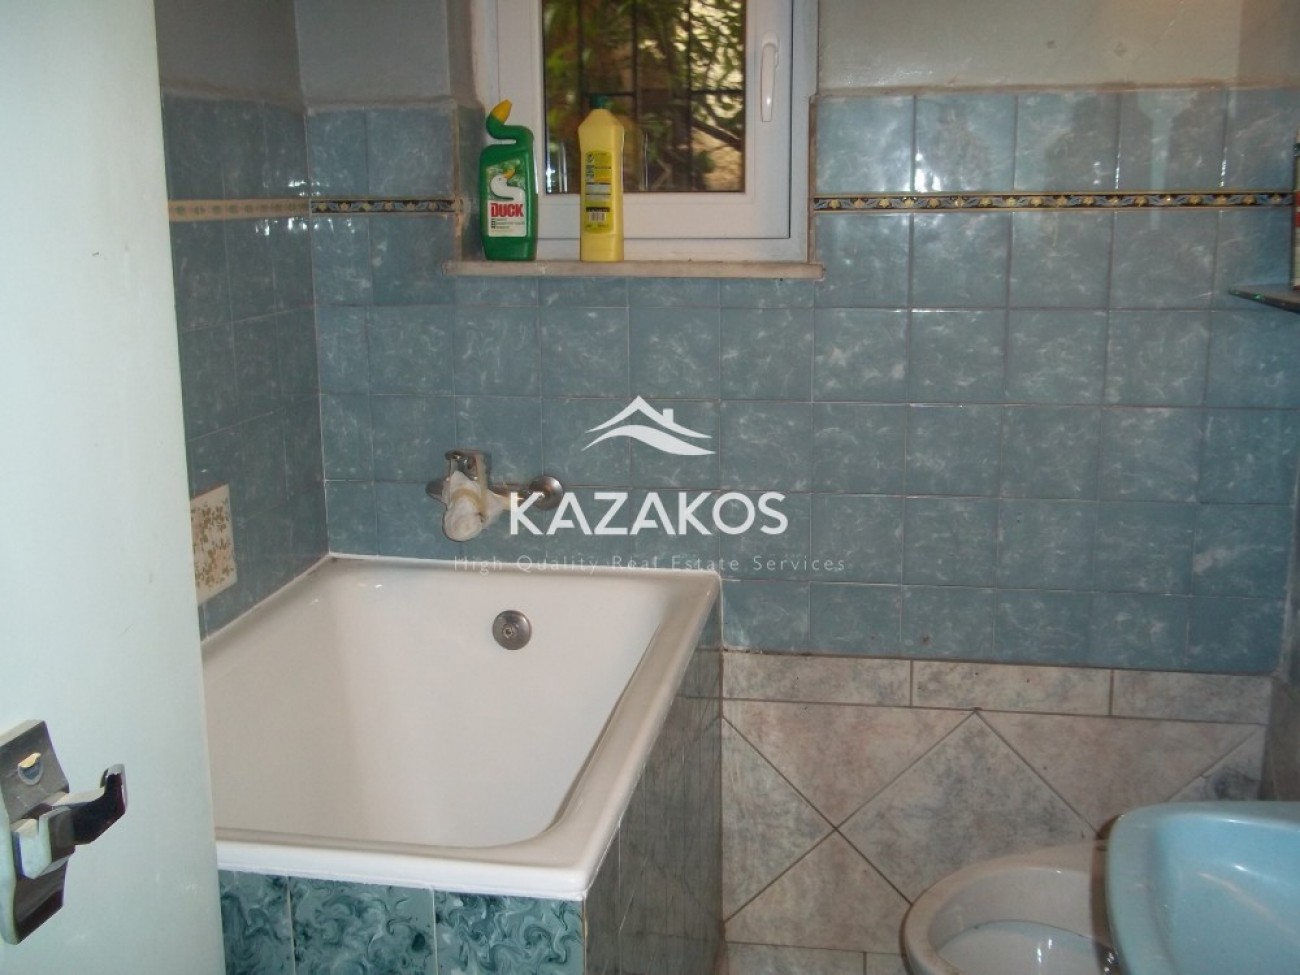 House for Sale in Palaio Phaliro, Central & South Region of Athens, Greece